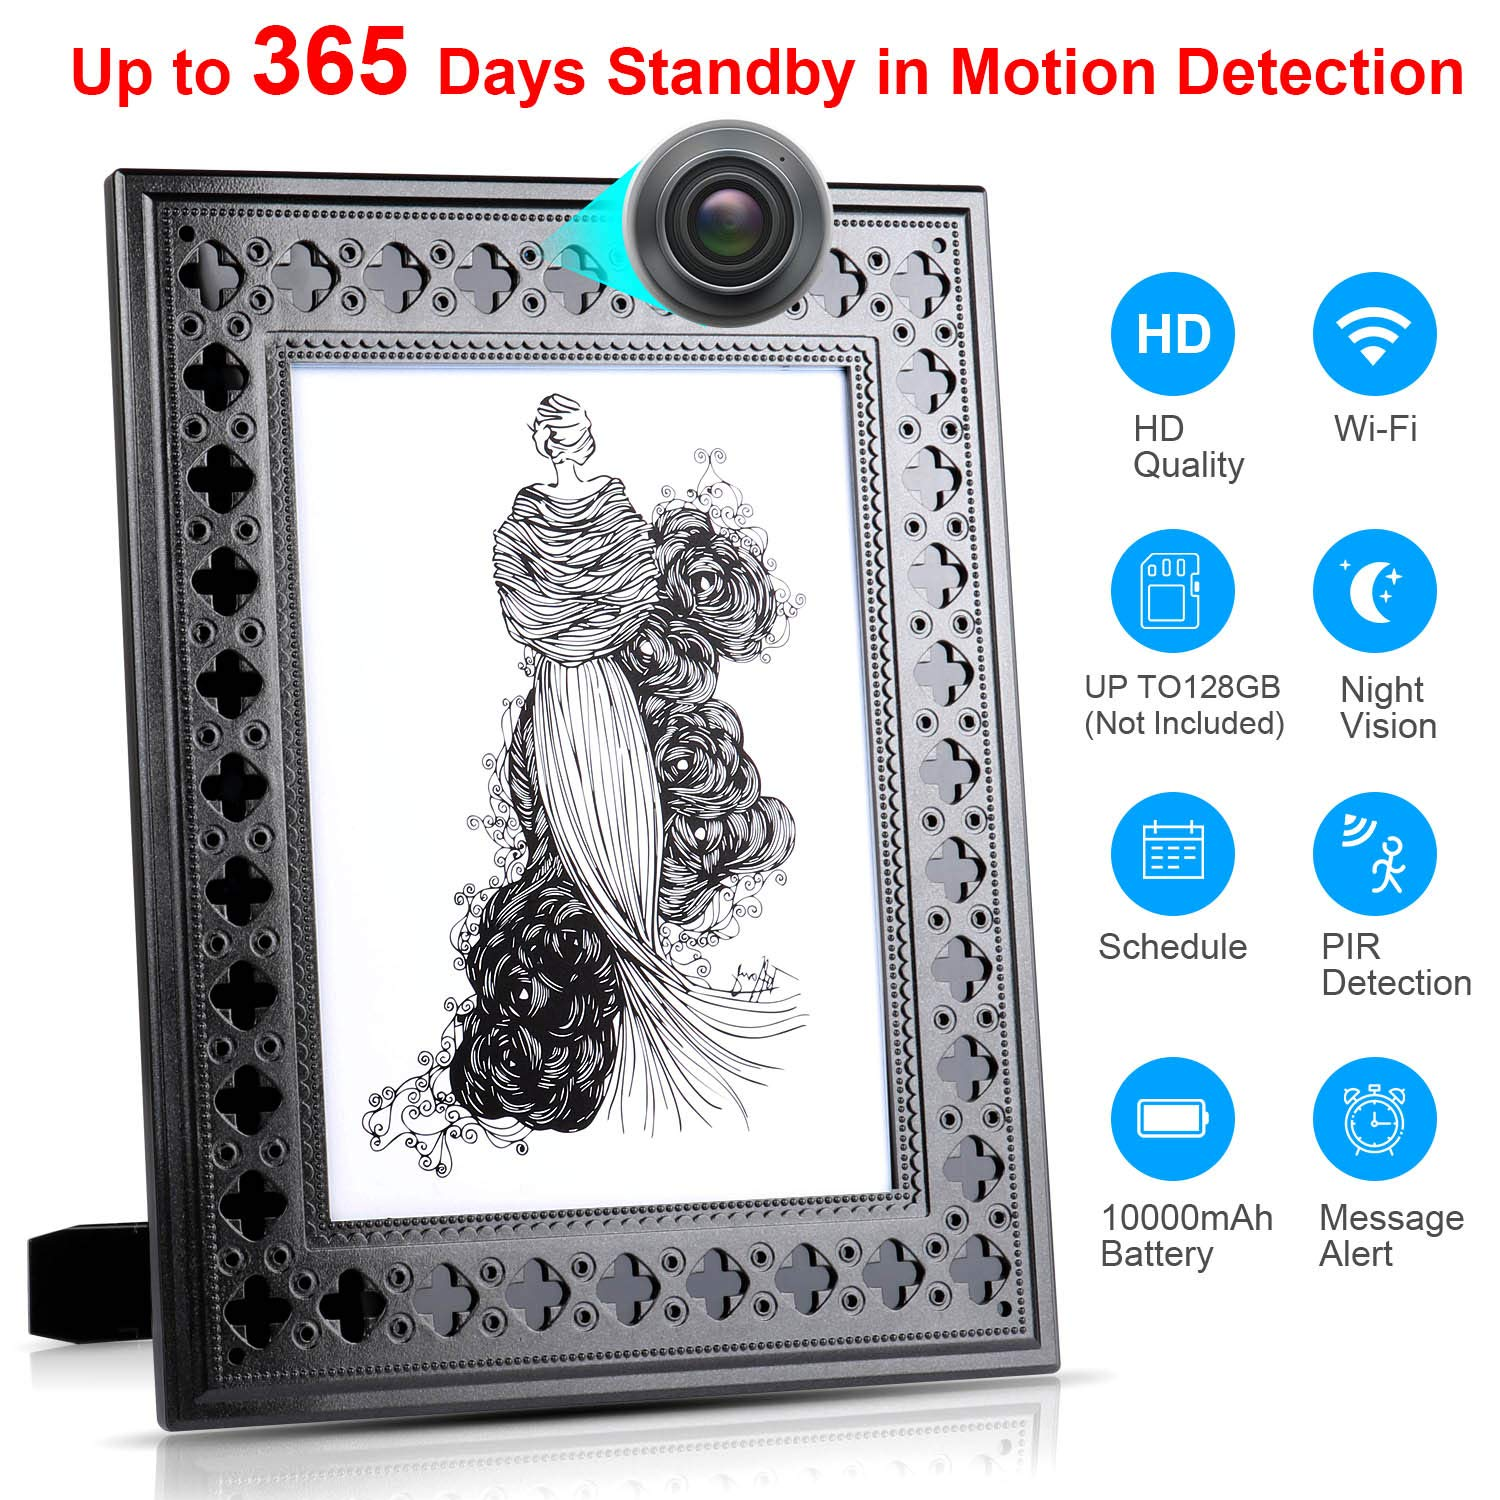 Spy Camera Wireless Hidden - Hidden Cam WiFi Photo Frame - Nanny Cams with Cell Phone APP - 720HD Night Vision & Motion Detection 365 Days Battery Powered Standby Instant Alerts for Indoor Security by NIGHT WELL